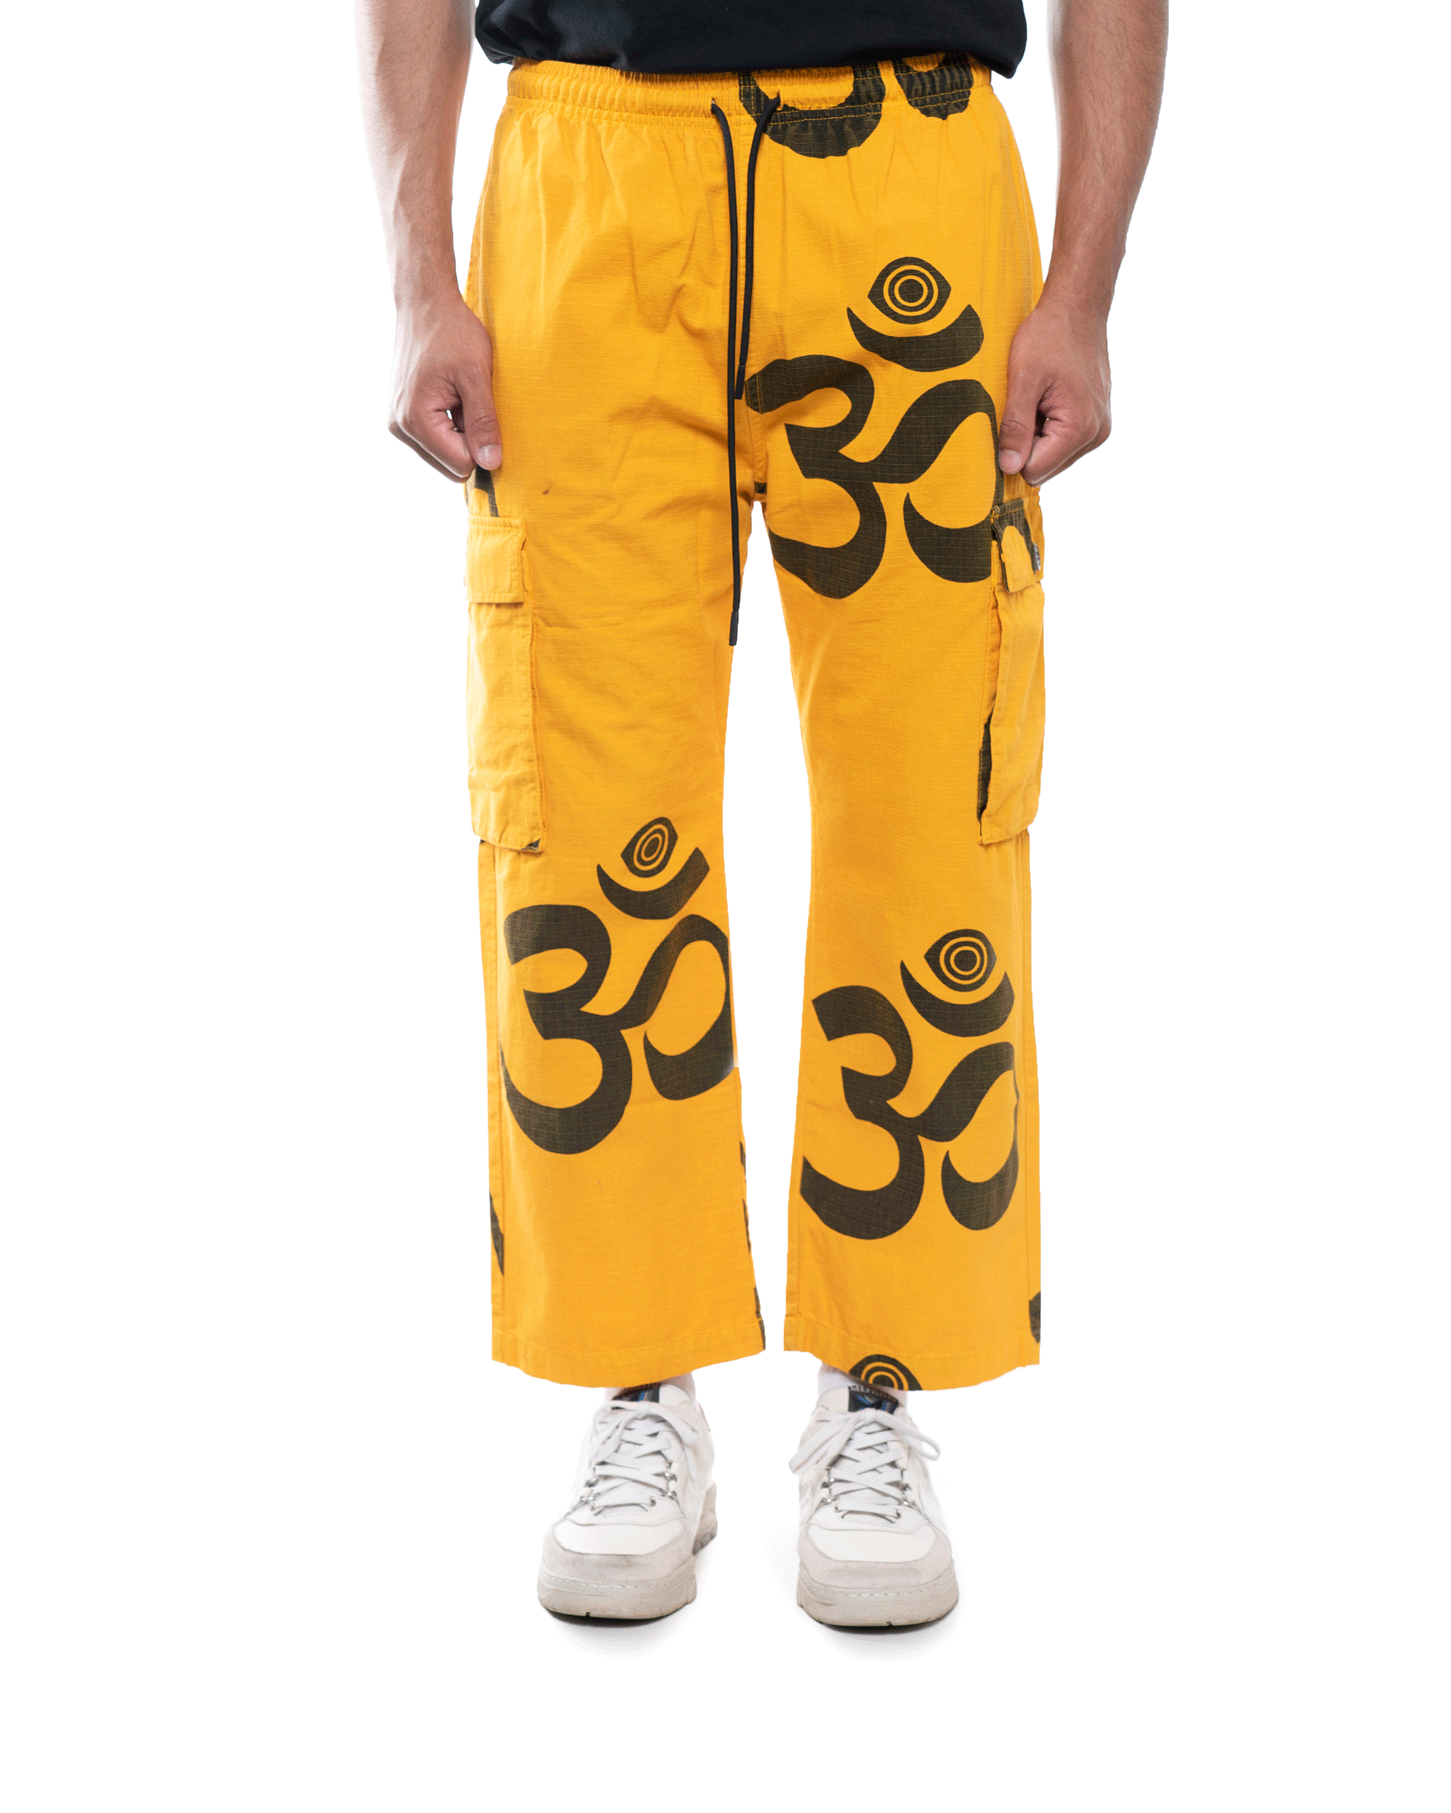 Insomniac LTD Ohm Eye Cargo Pant Gold